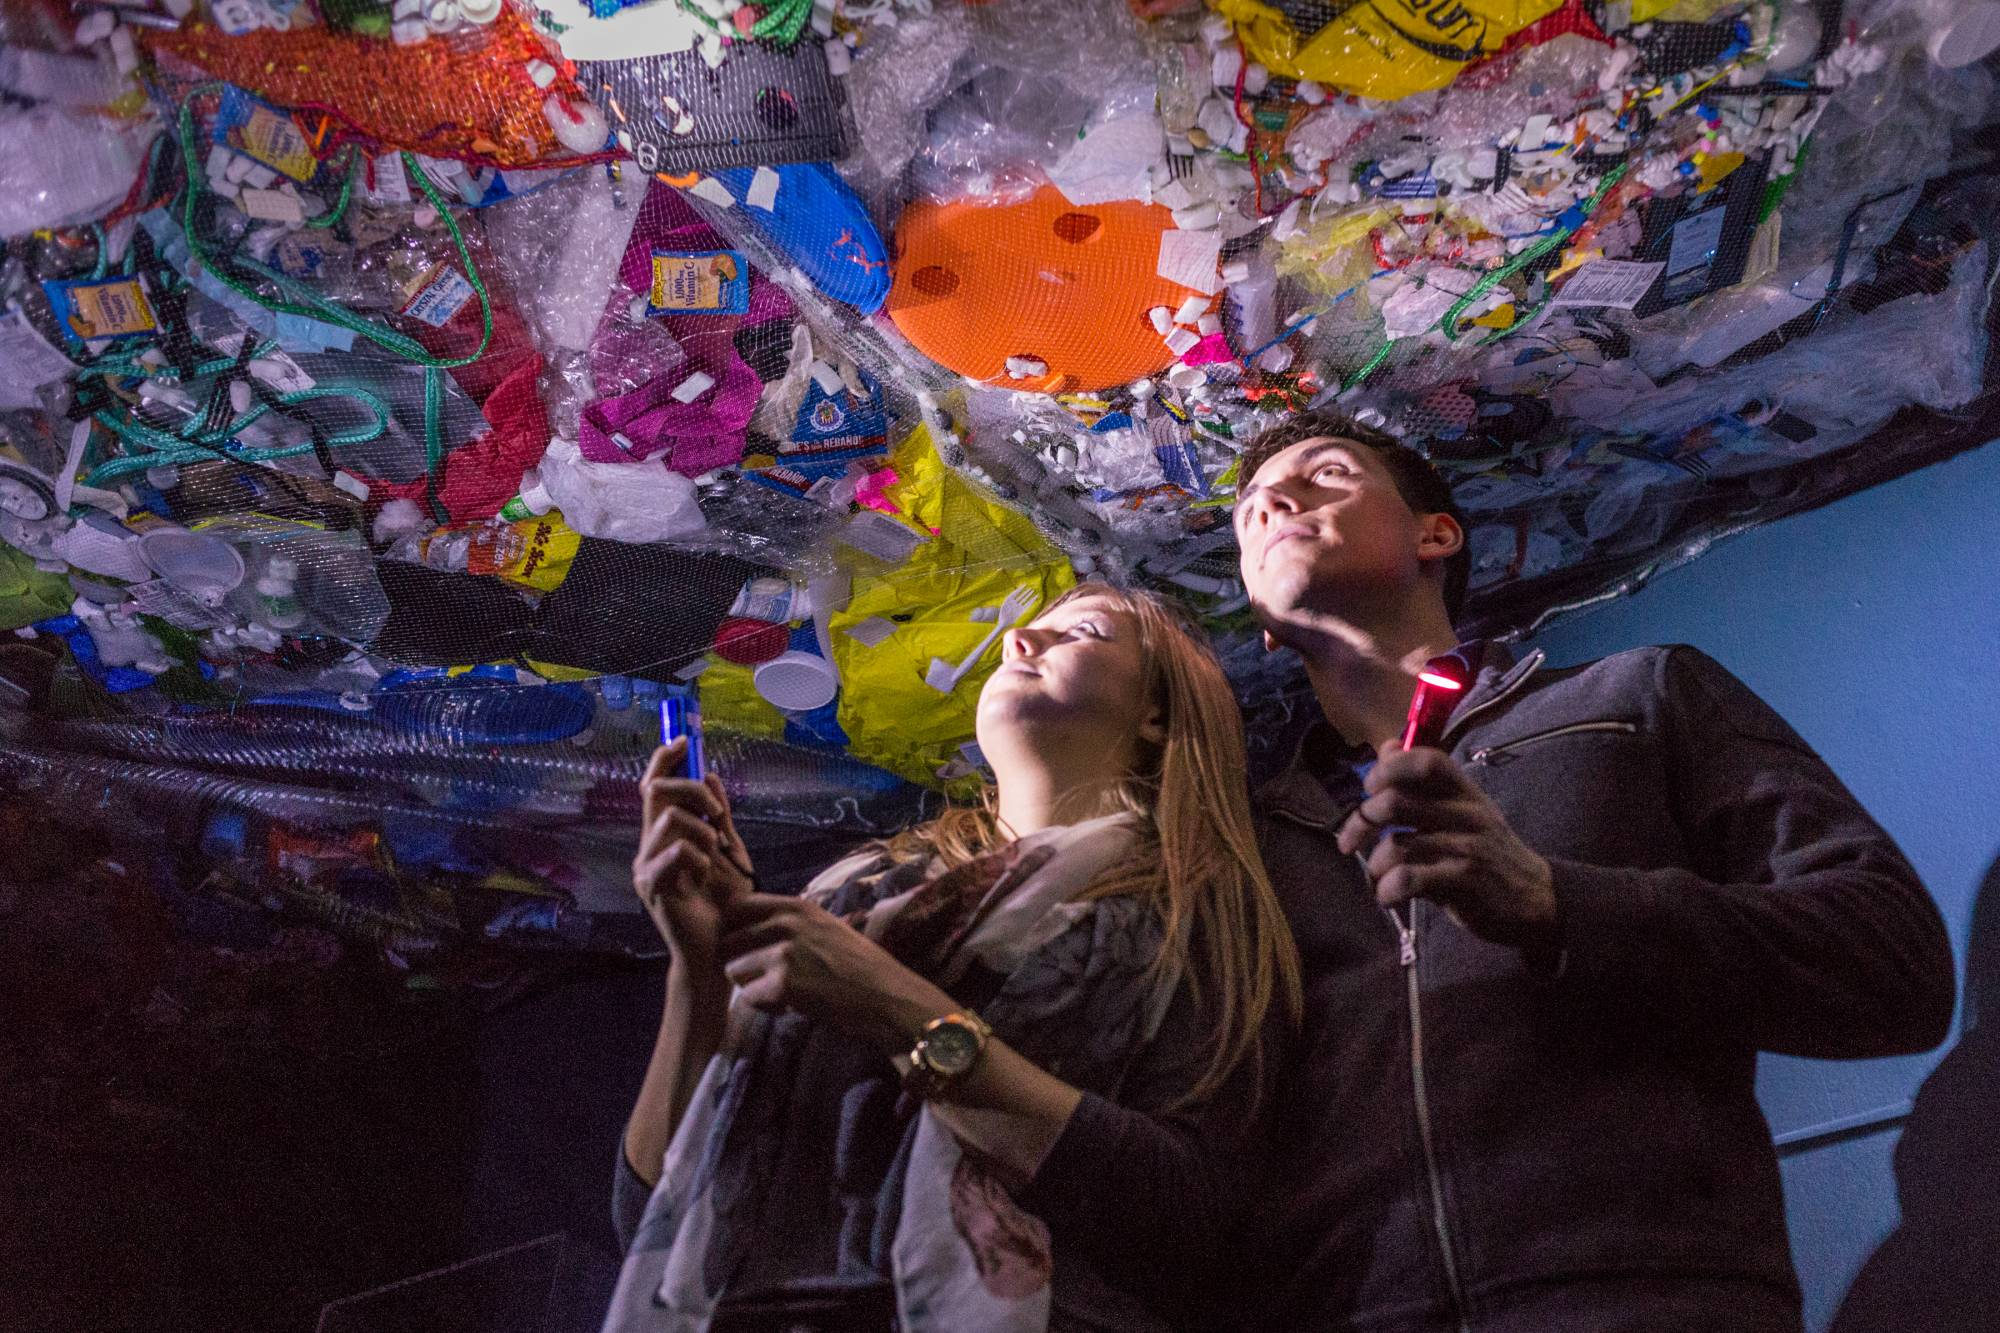 Two people stand underneath a net filled with trash